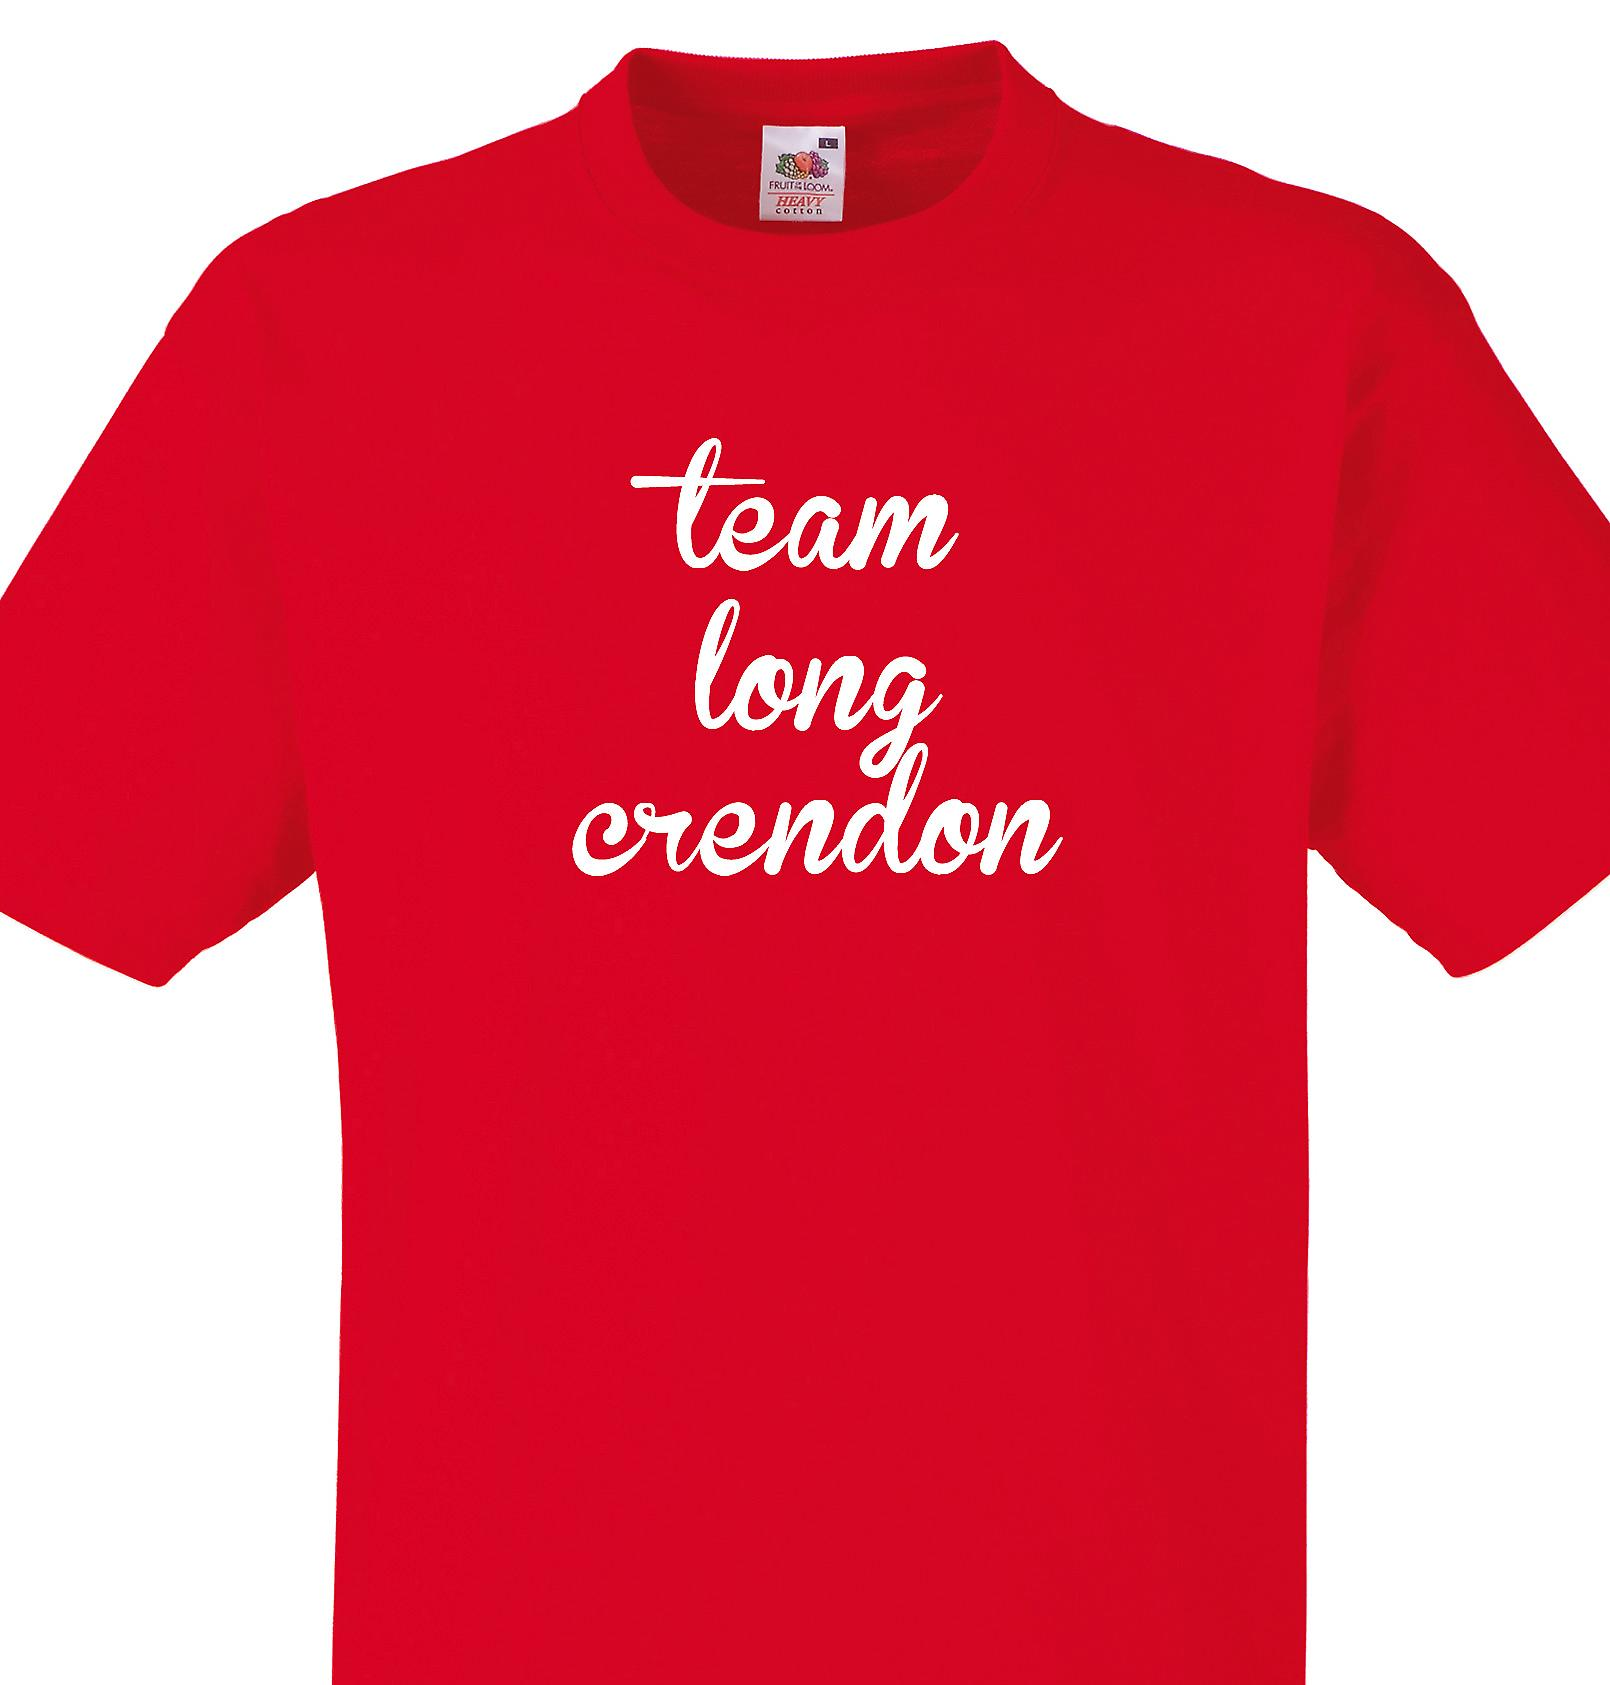 Team Long crendon Red T shirt